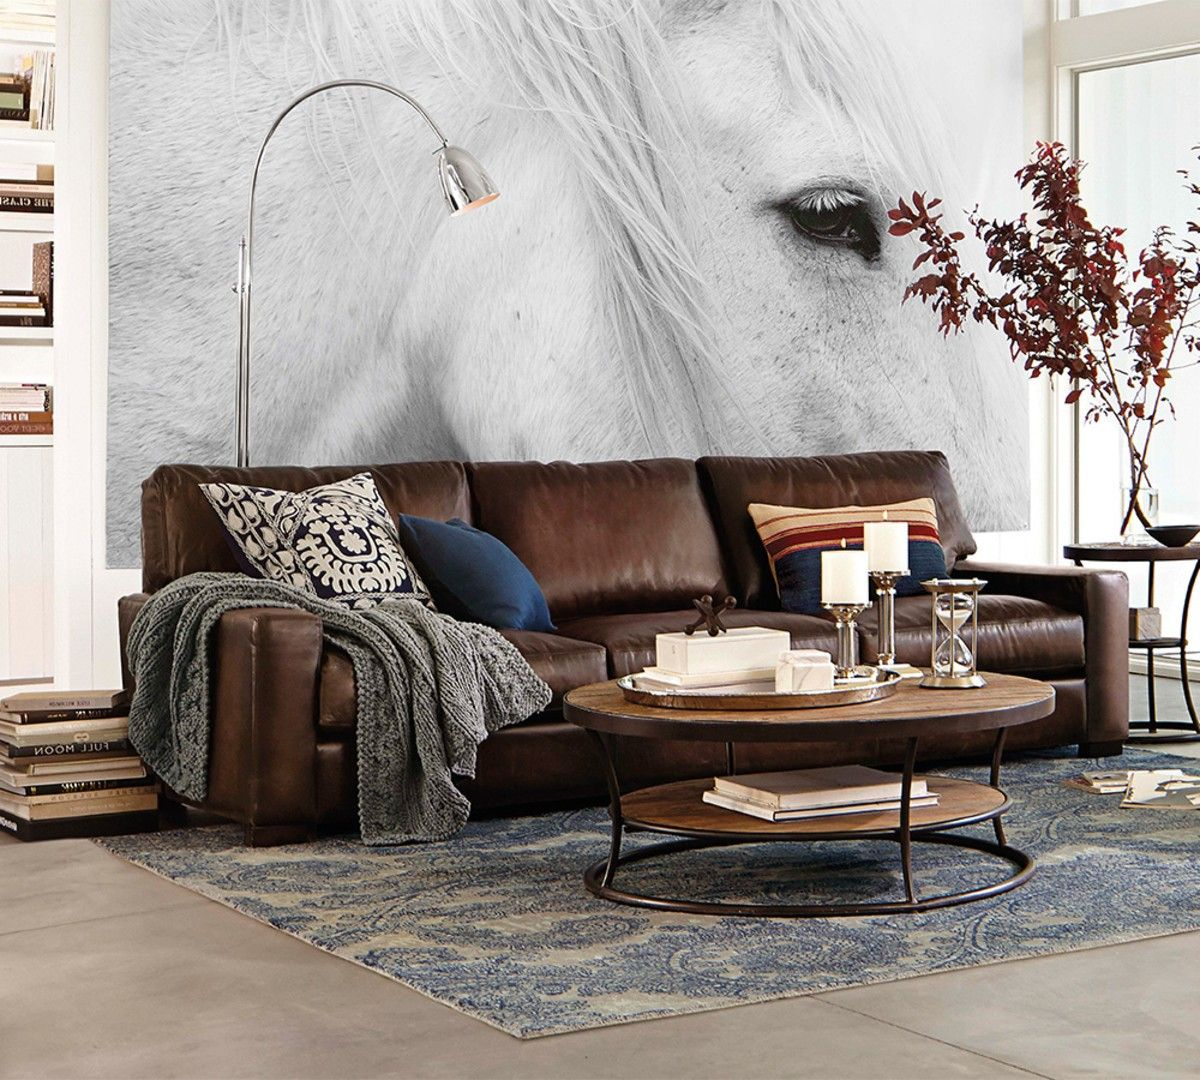 Pottery Barn Leather Chair Sofas And Sectionals Pottery Barn Turner Square Arm Leather